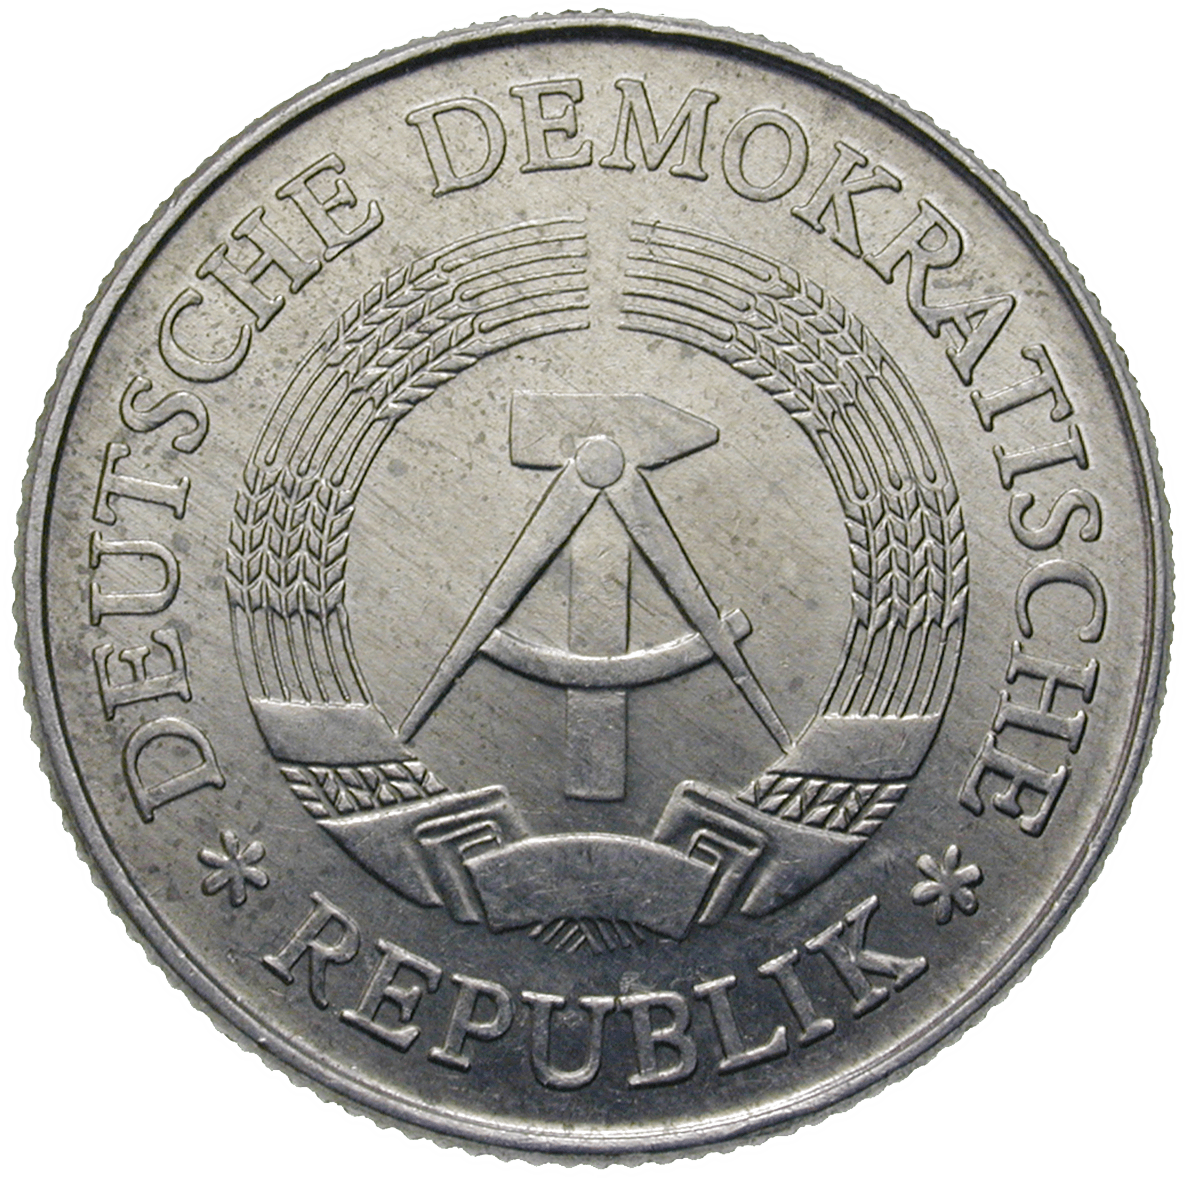 German Democratic Republic, 2 Mark 1978, Berlin (obverse)